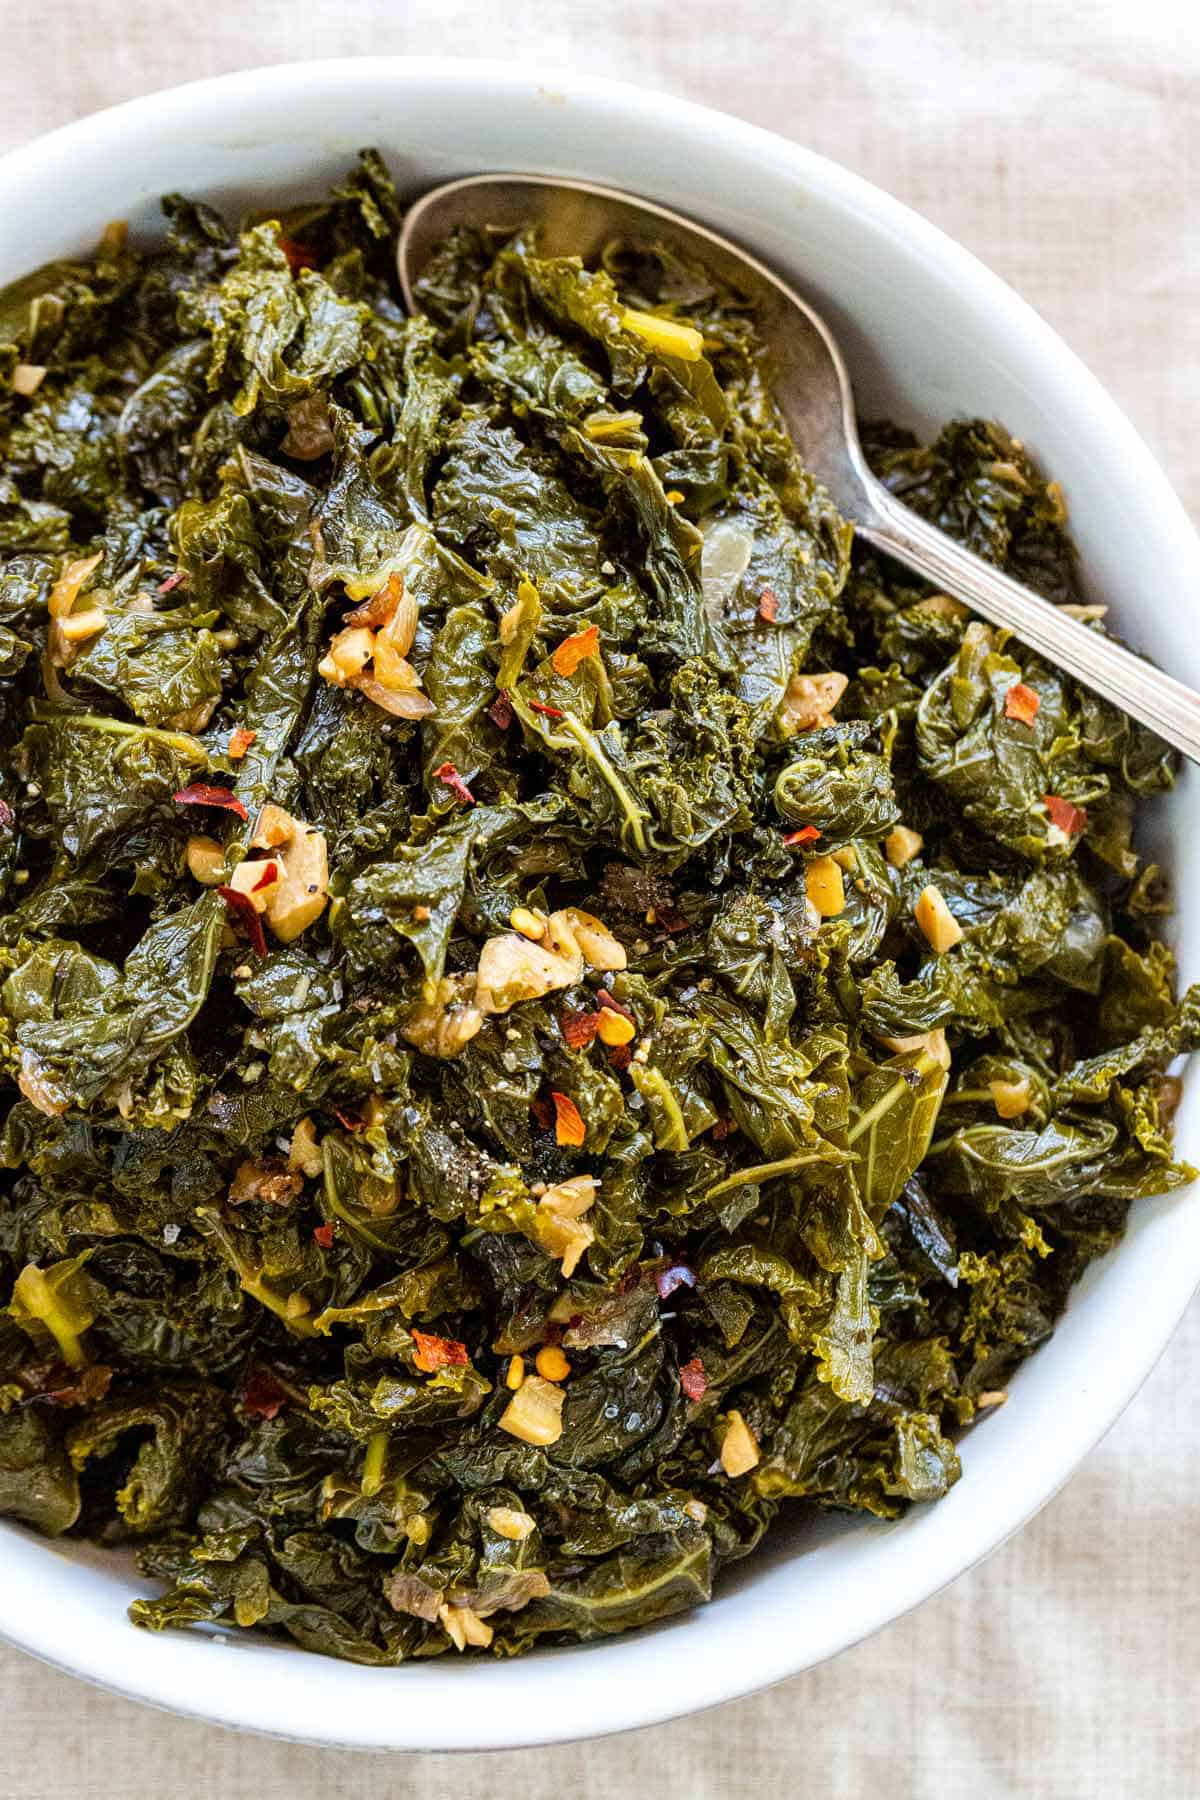 Braised kale is a simple way to tenderize and deepen the flavor. The greens first saute to maximize the aromatics in the dish then get covered and simmer. #kale #braisedkale #healthyrecipes #sidedish